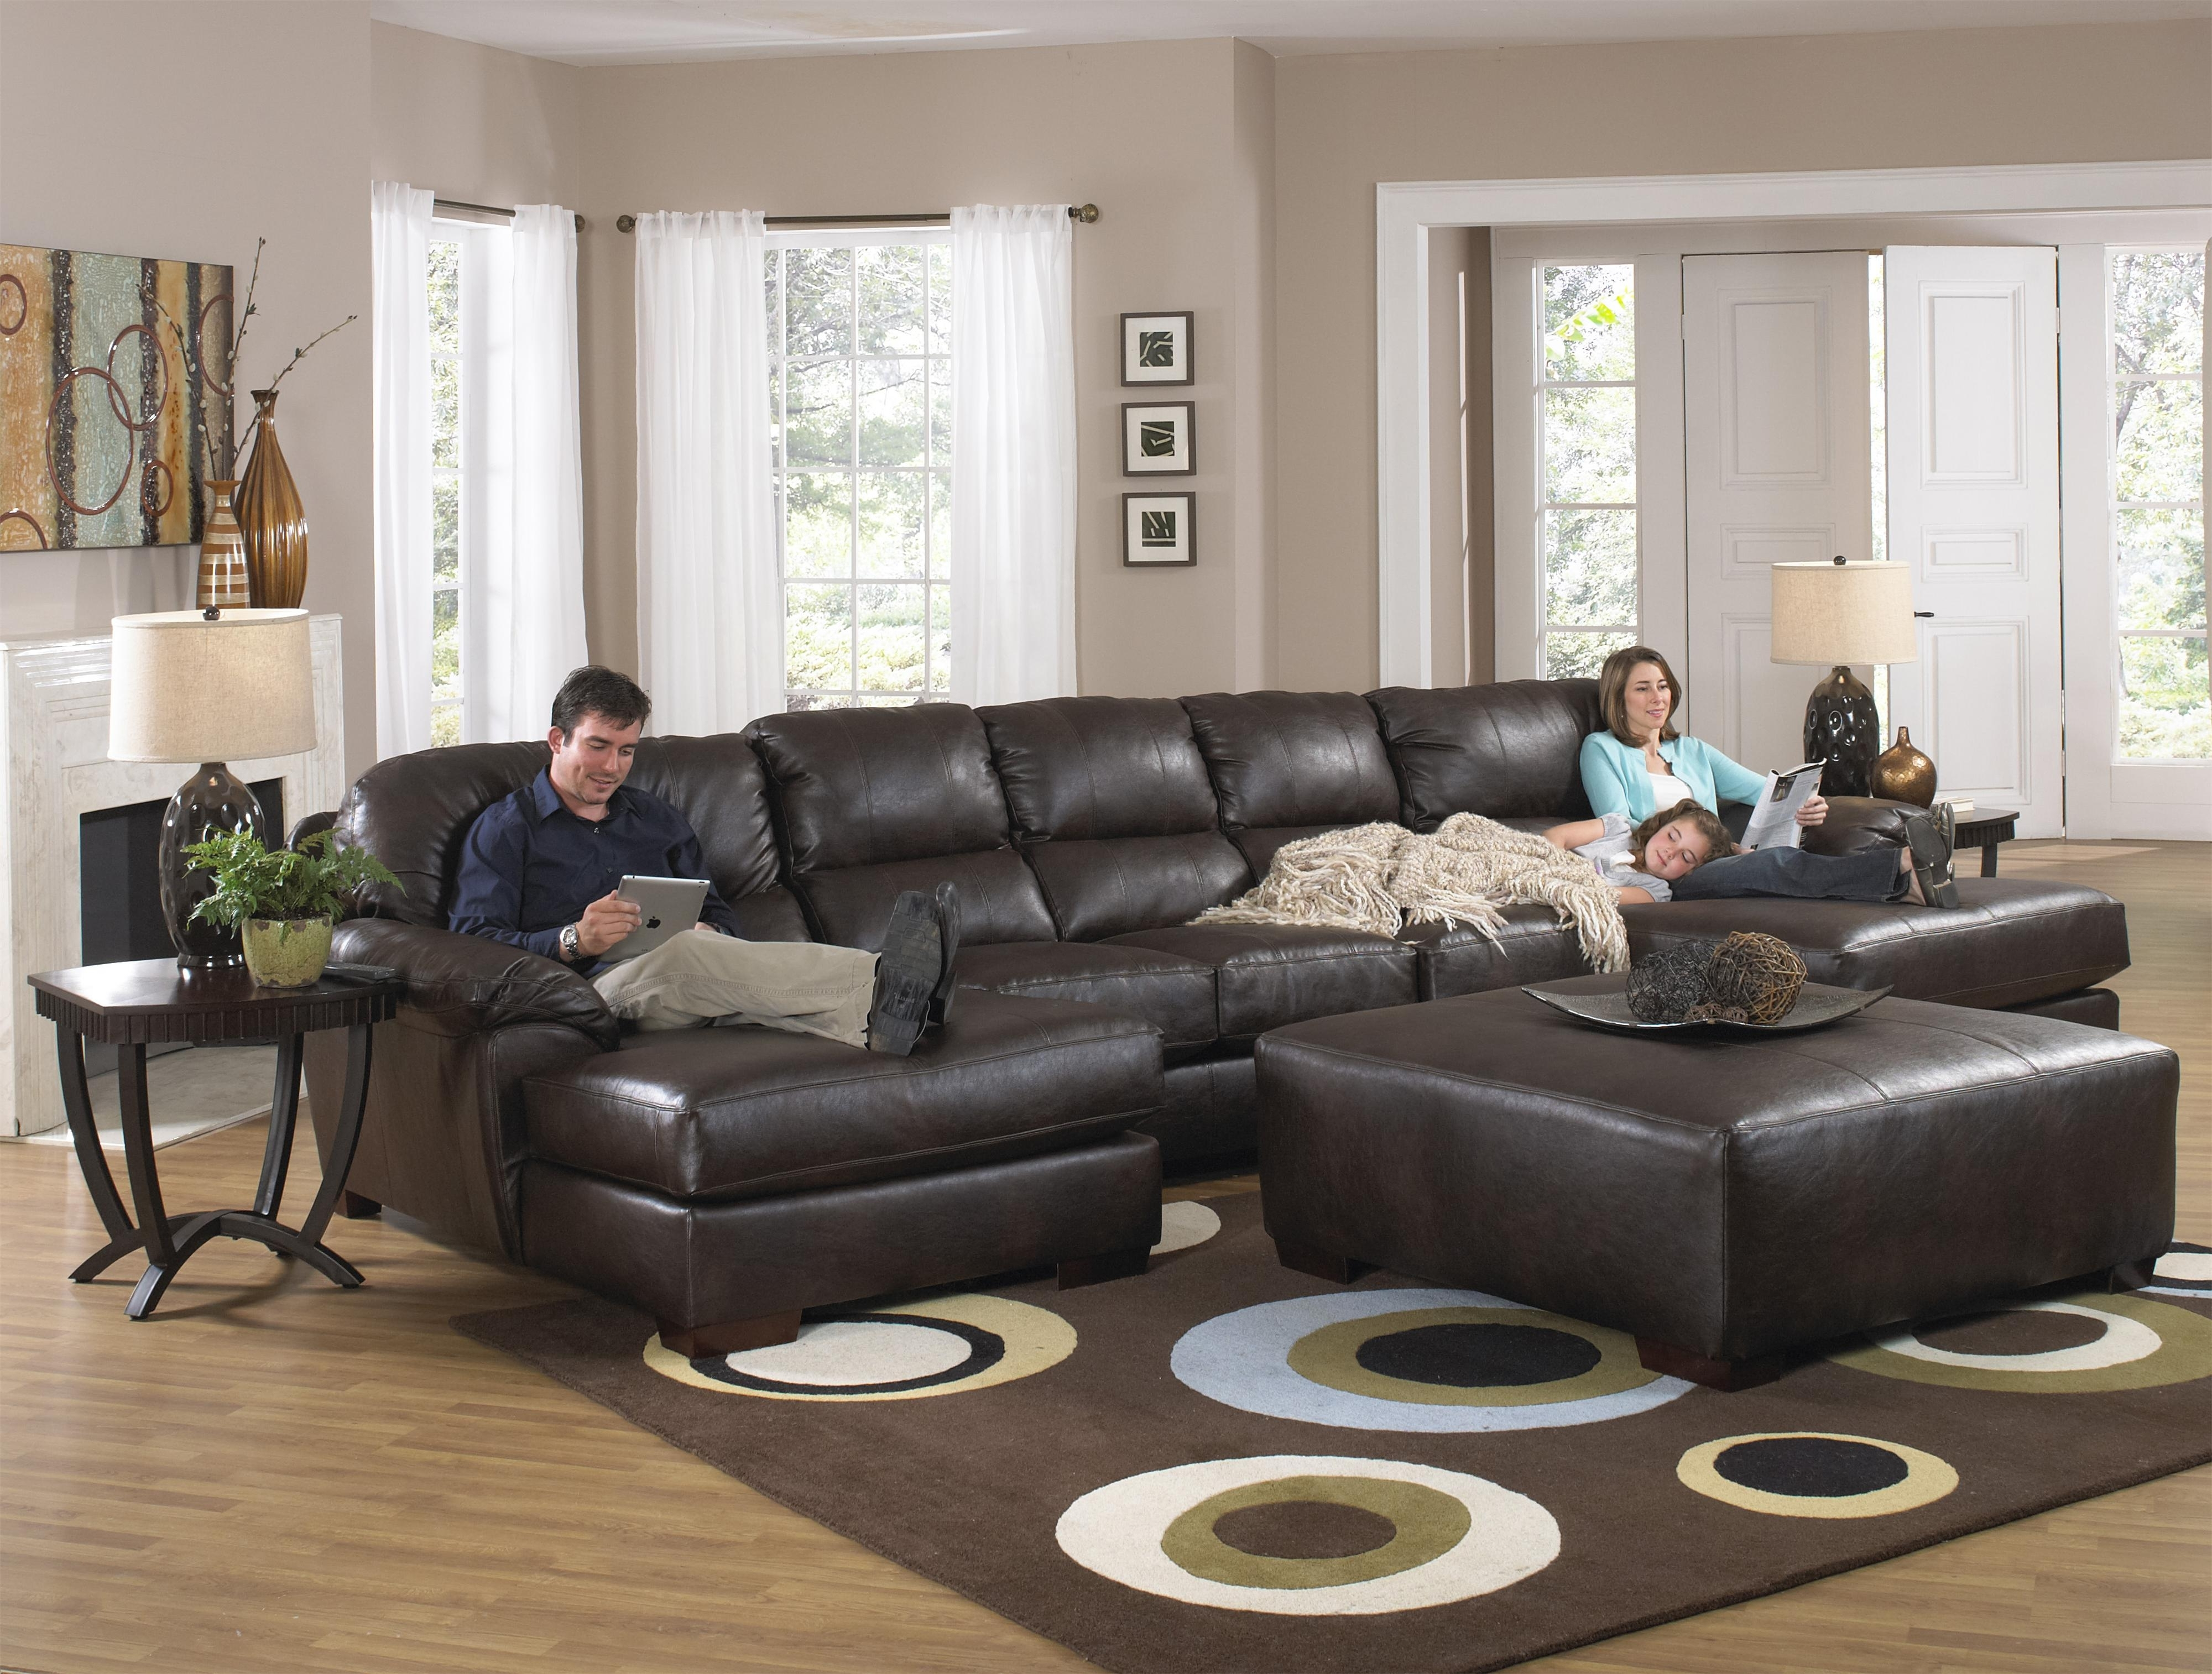 Two Chaise Sectional Sofa With Five Total Seatsjackson For Widely Used 2 Piece Sectionals With Chaise Lounge (View 7 of 15)